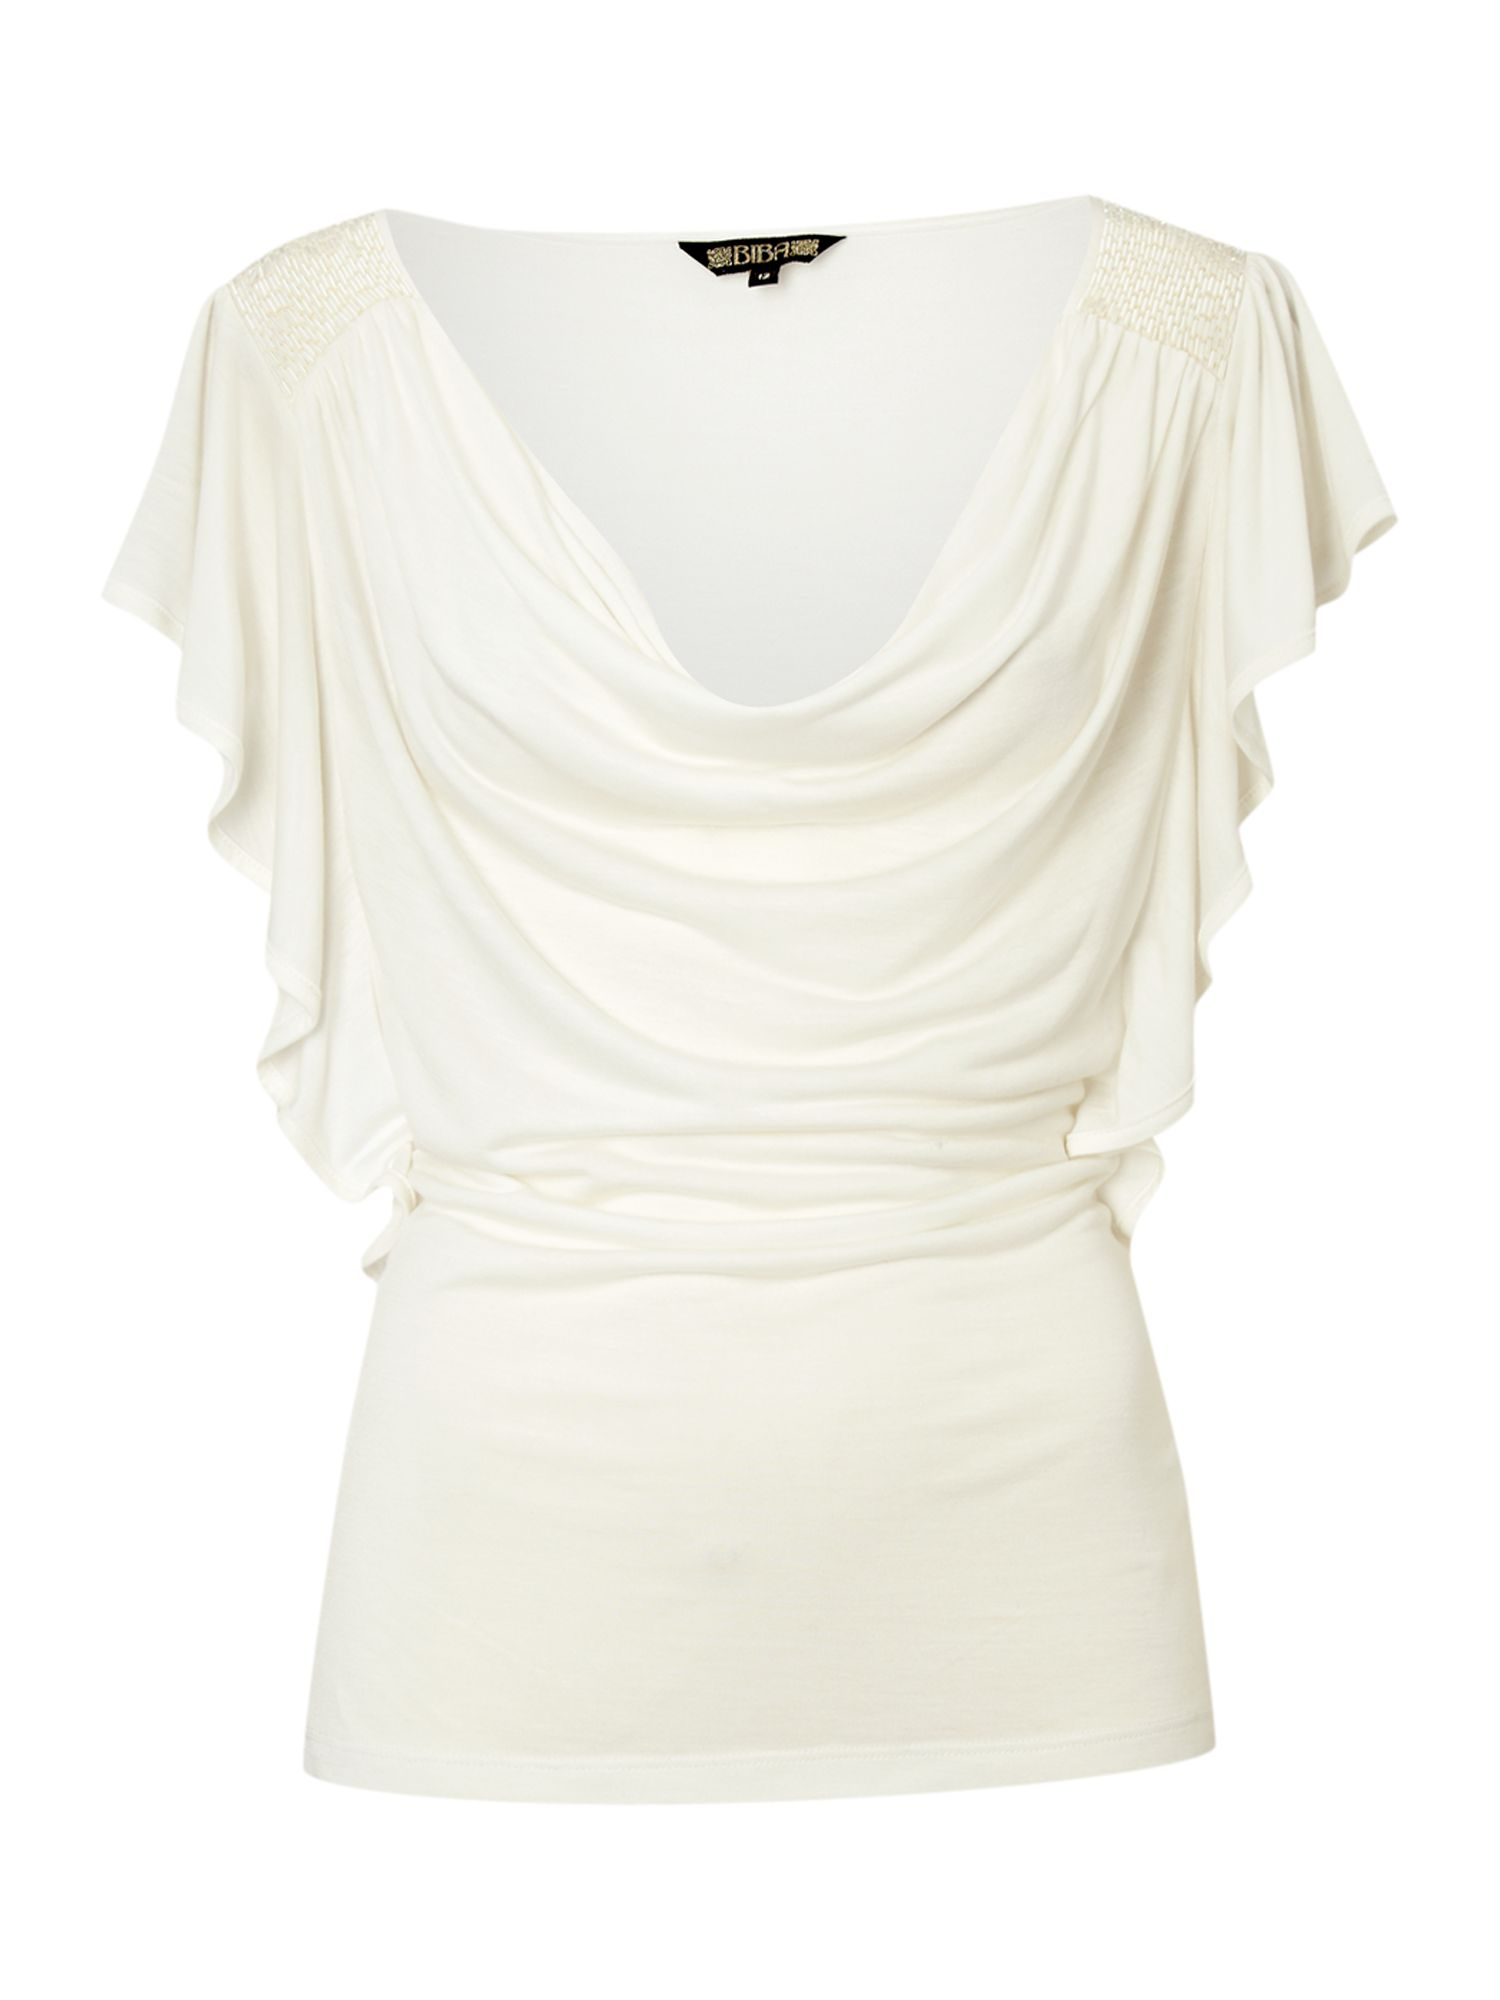 Biba Womens Biba Cowl front beaded t-shirt, product image